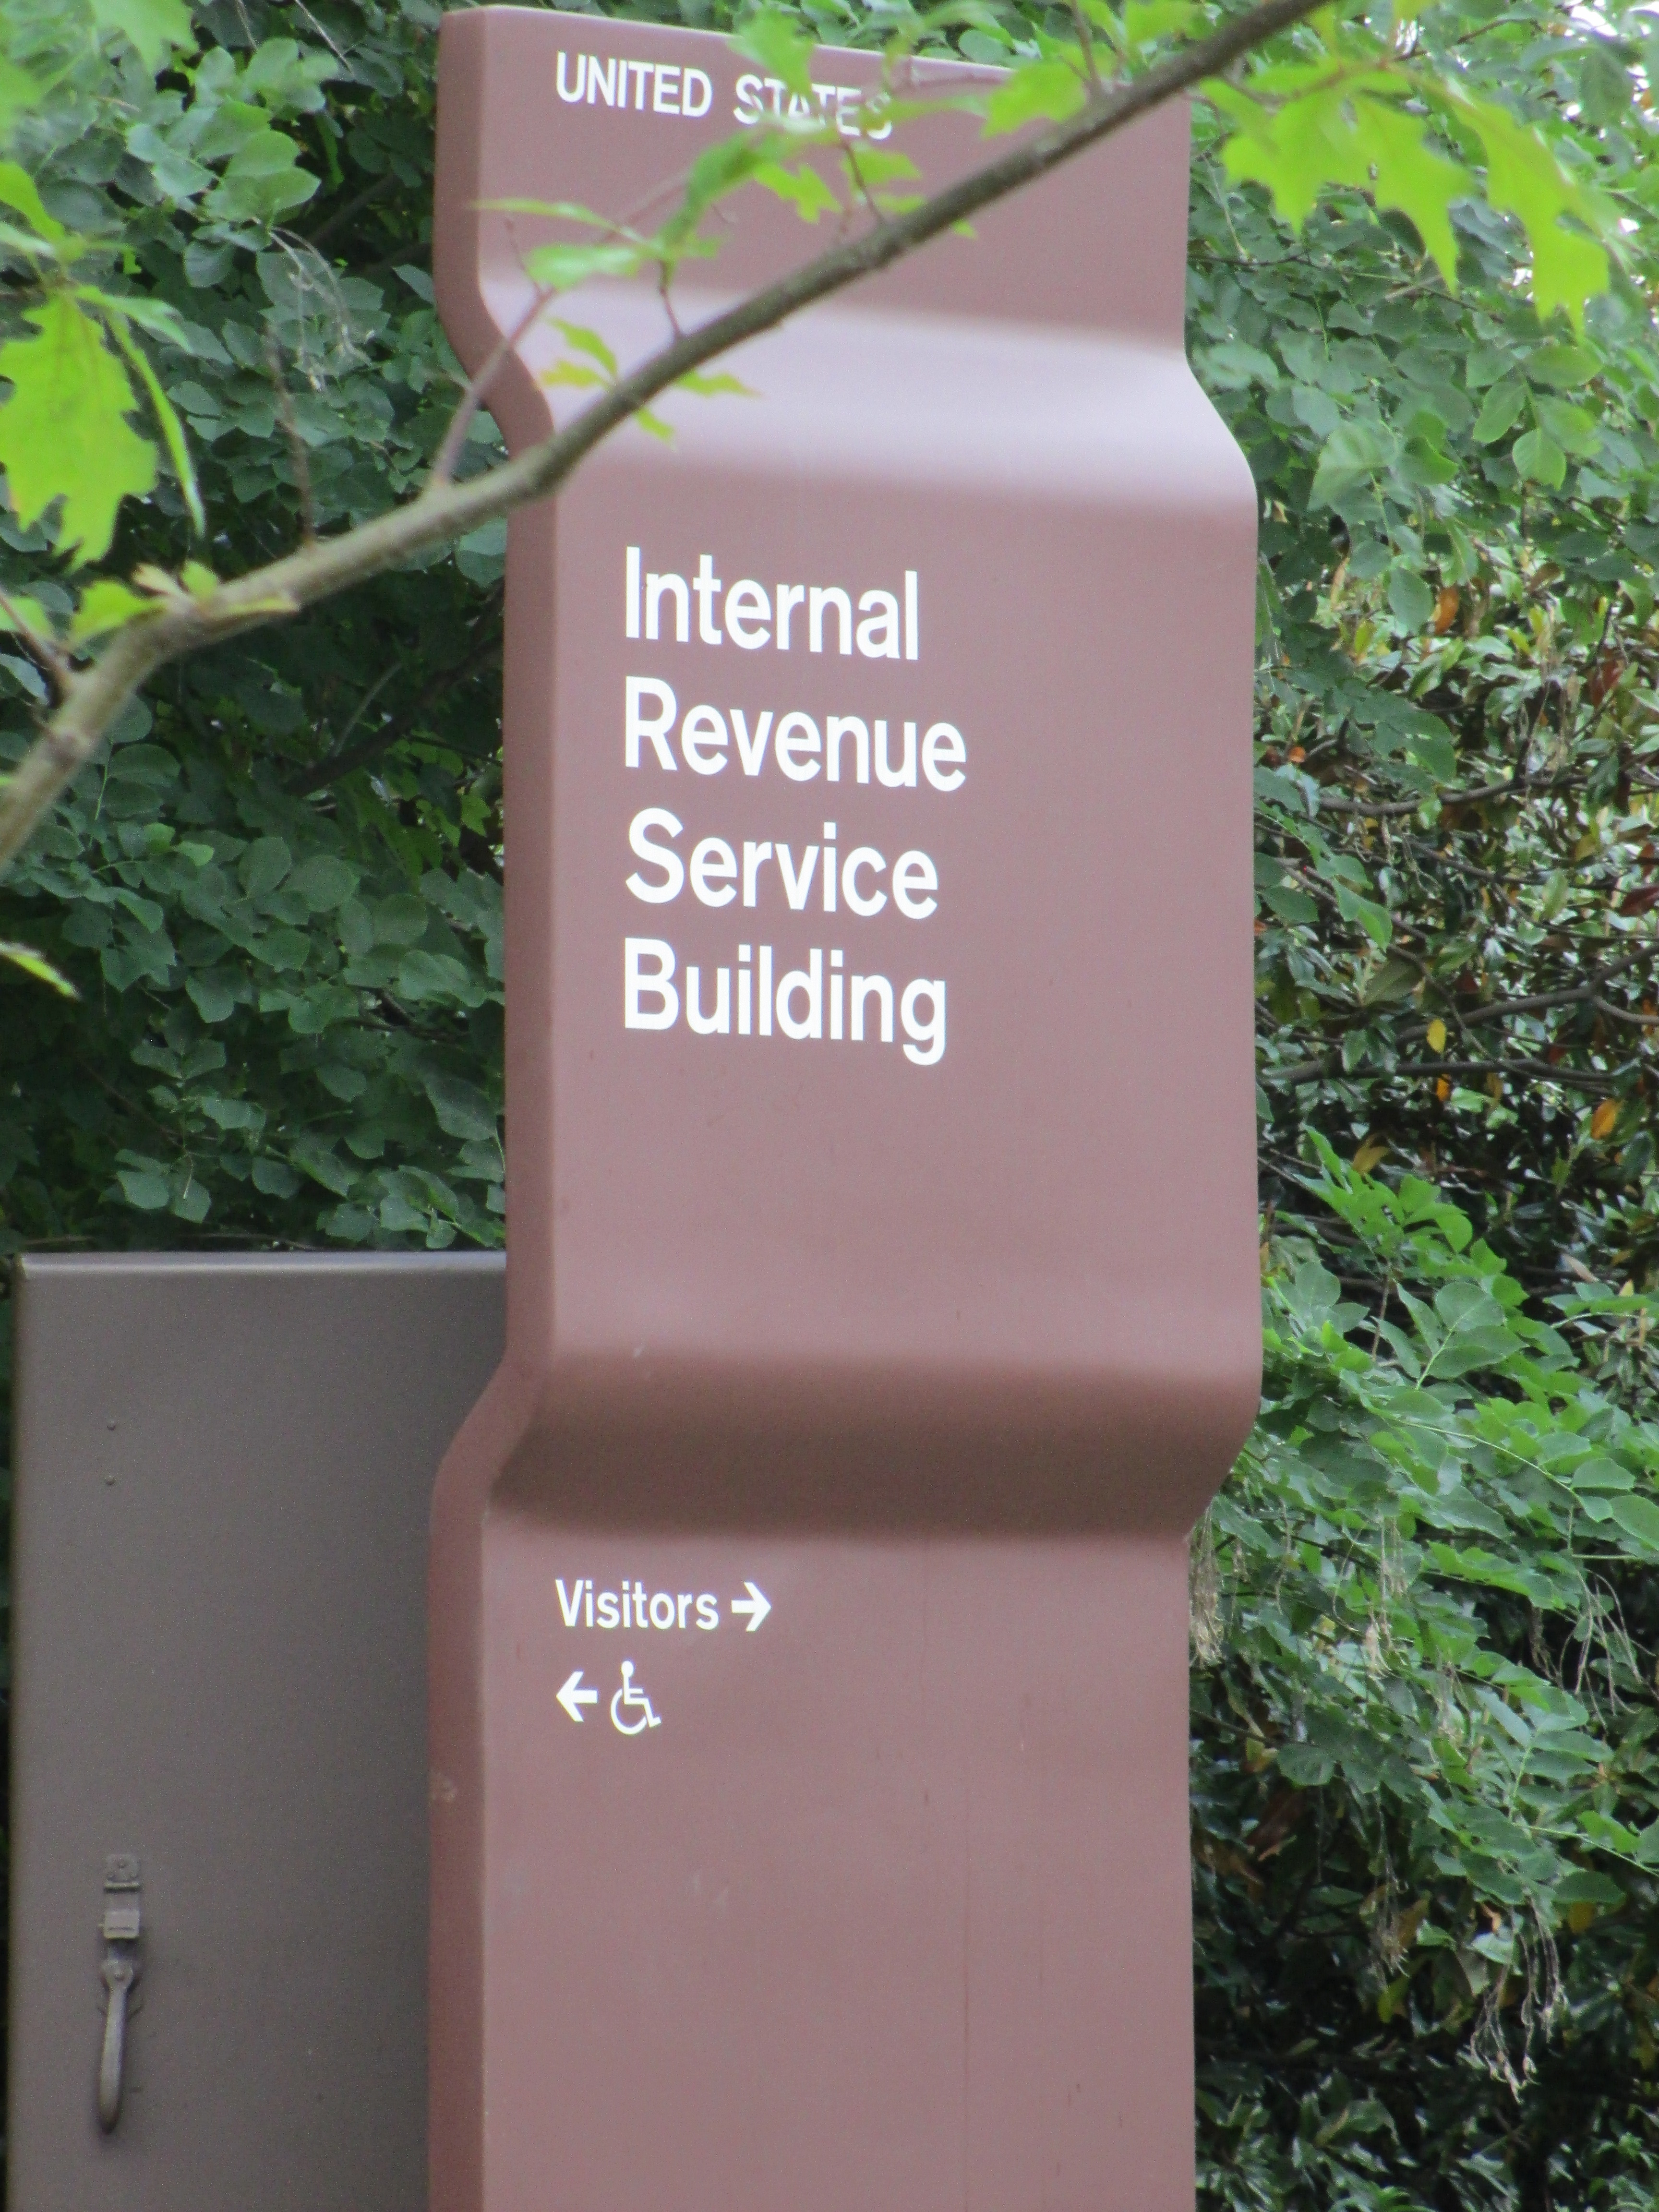 IRS Targets Old Debts, Not Current Back Taxes